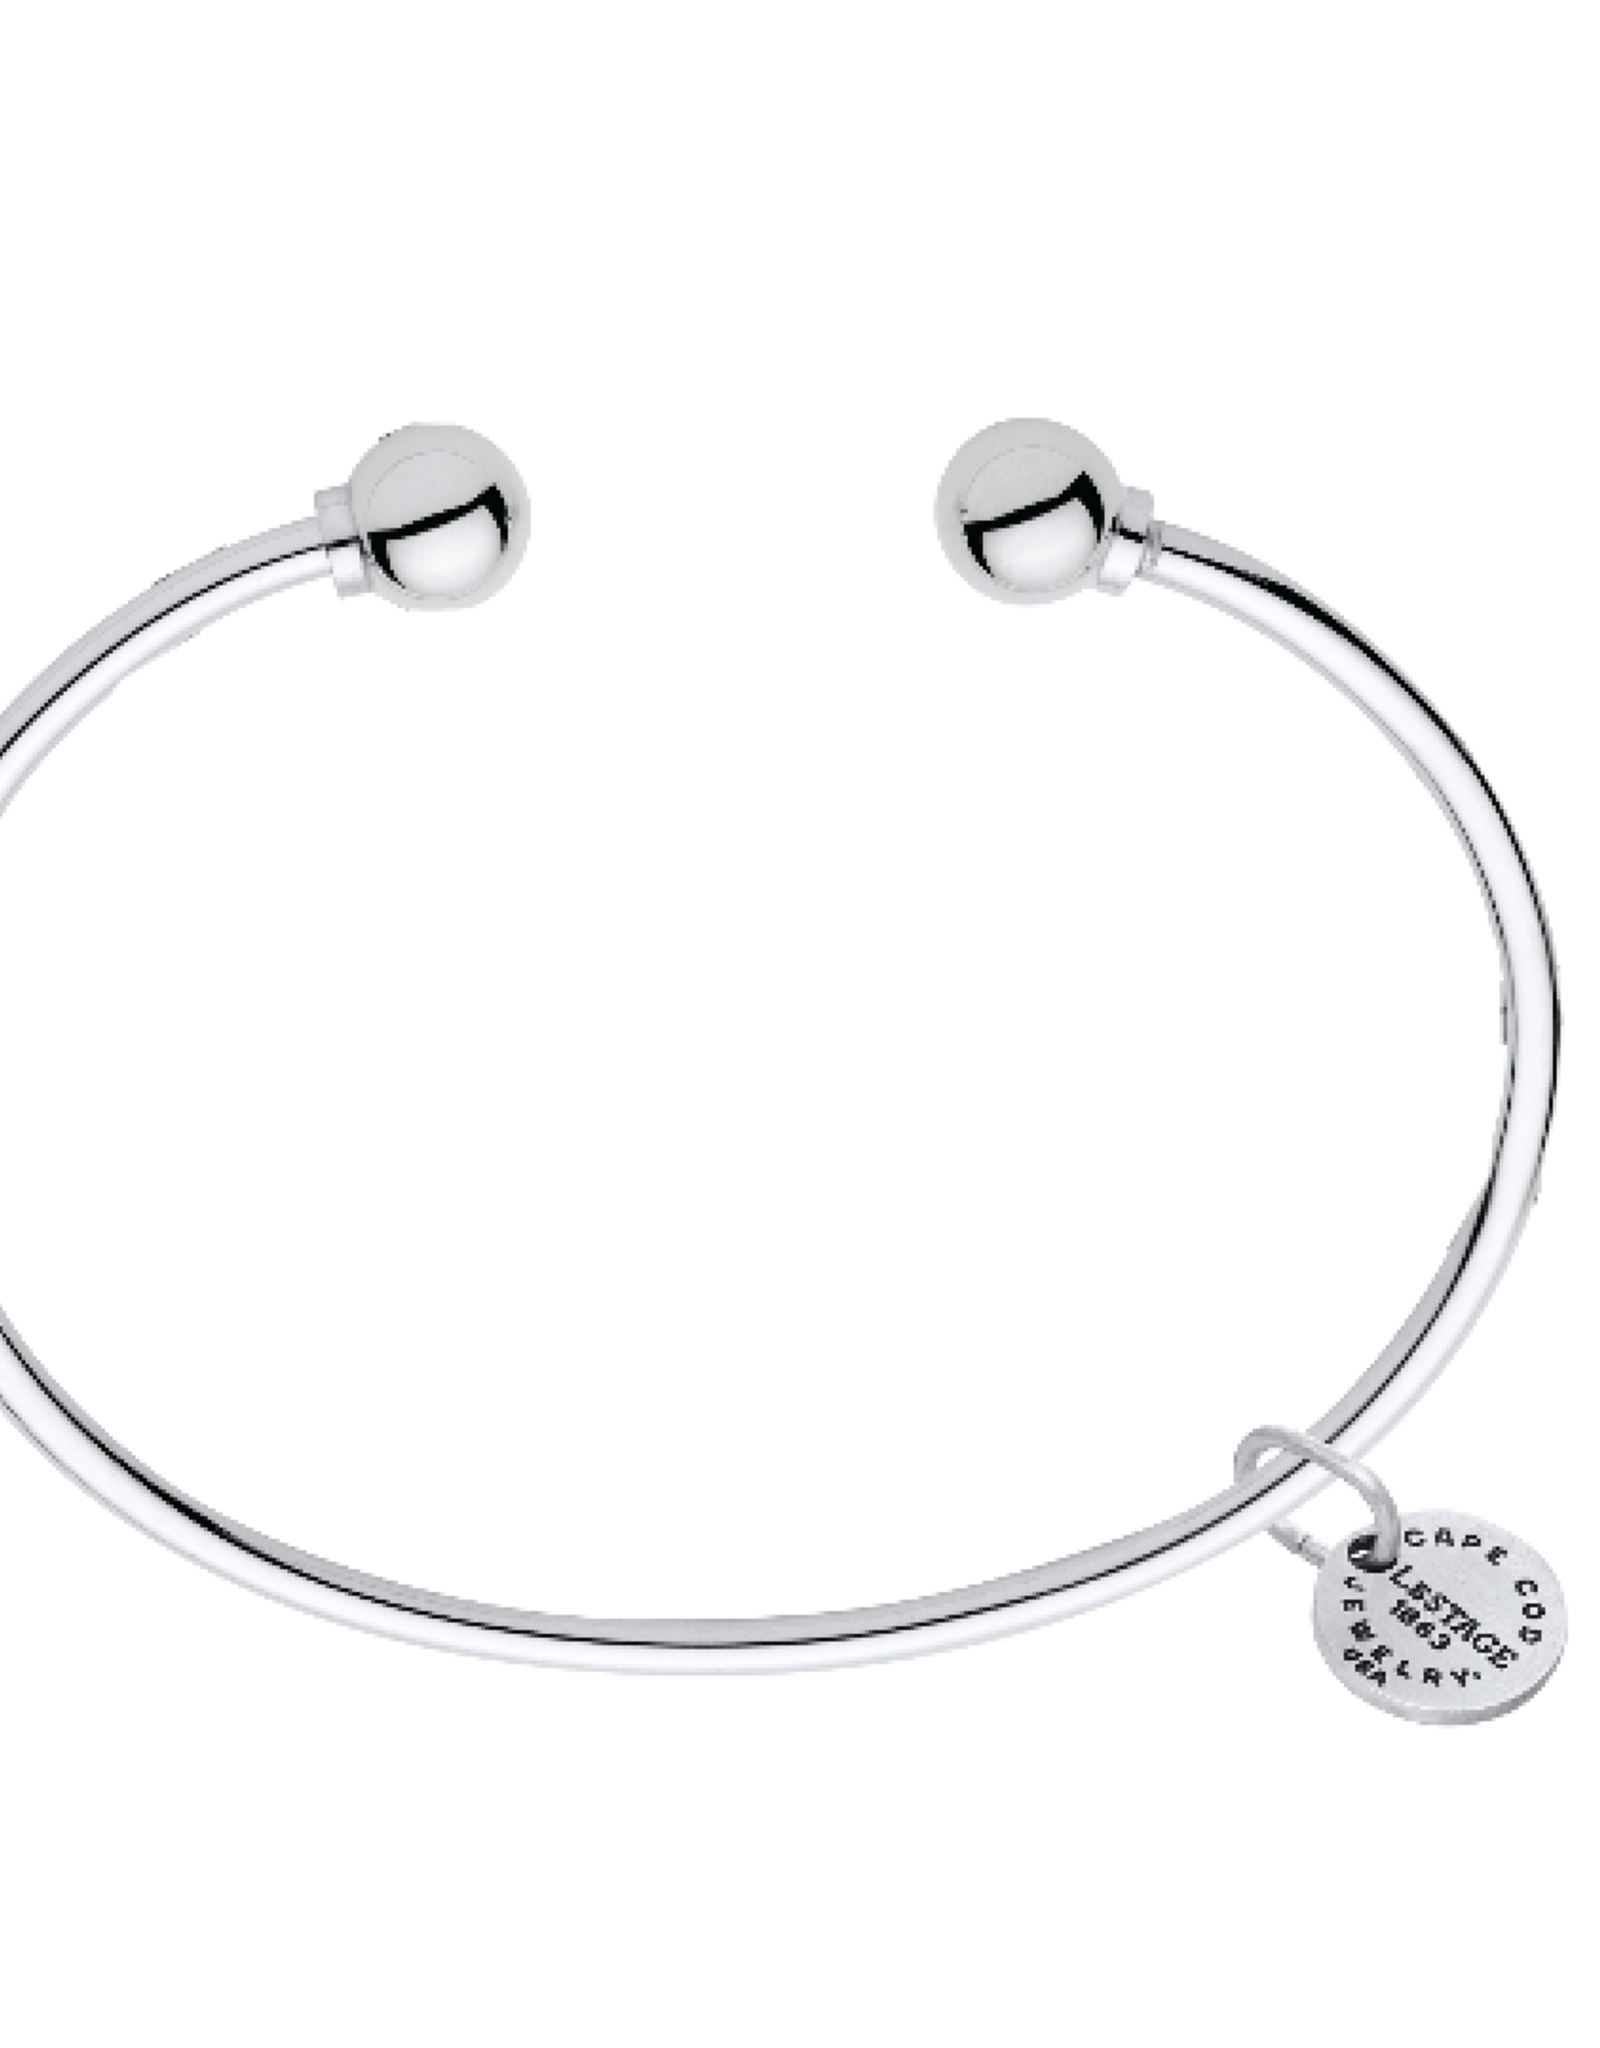 LeStage - The Classic Cape Cod Double Ball Bracelet - Sterling Silver with a Sterling Silver Ball